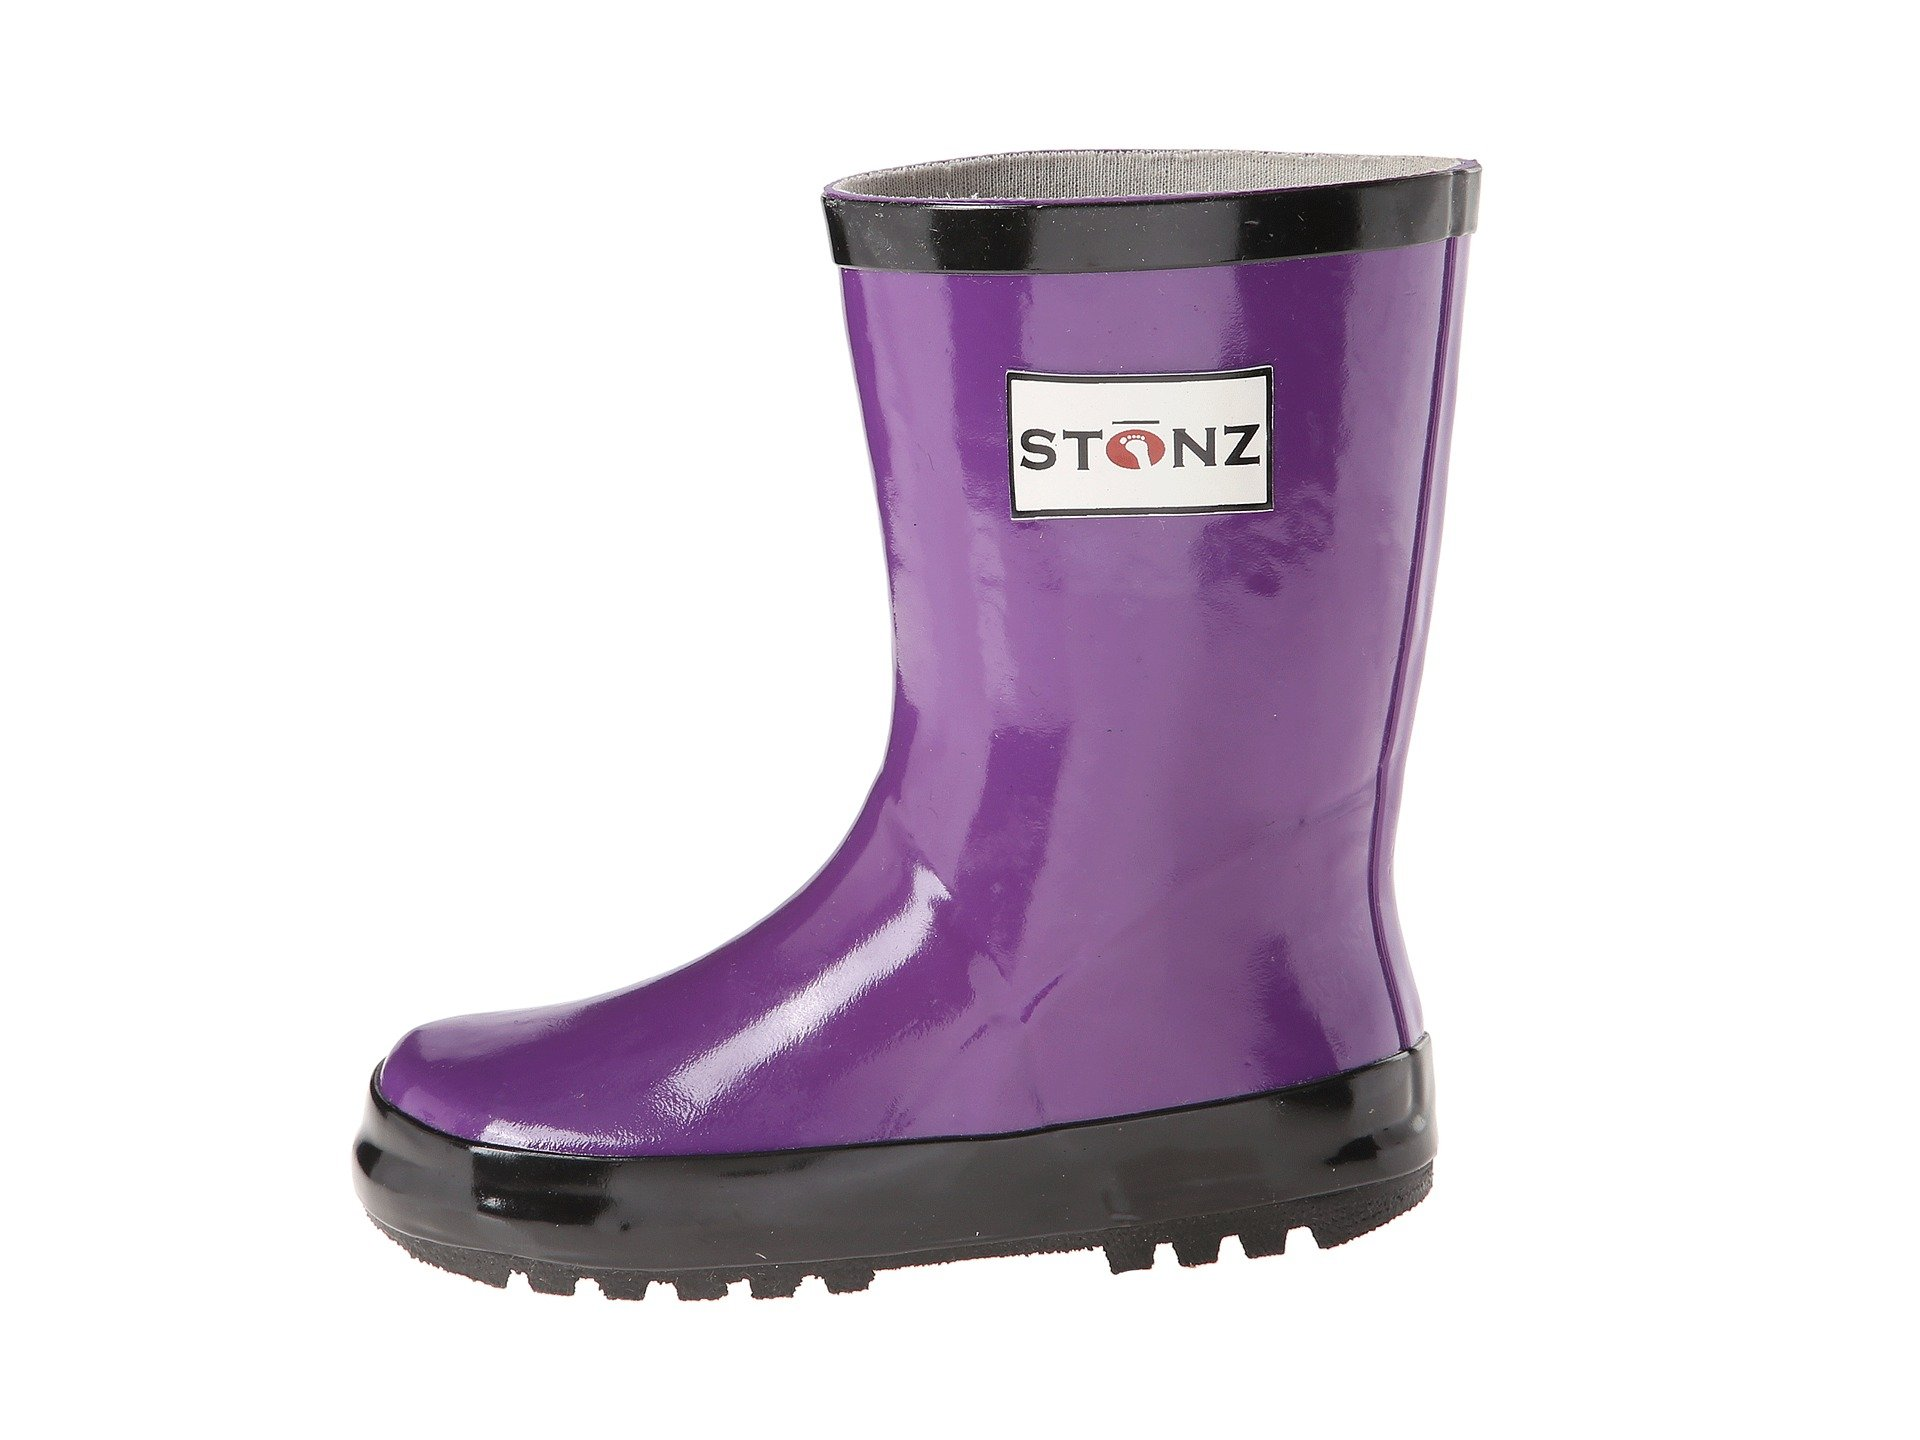 Stonz All-Natural Rubber Rainboot Rain Boots for Toddler Little Big Kid - Waterproof Colorful Warm - Summer Fall Winter - Purple, Size 1Y by Stonz (Image #2)